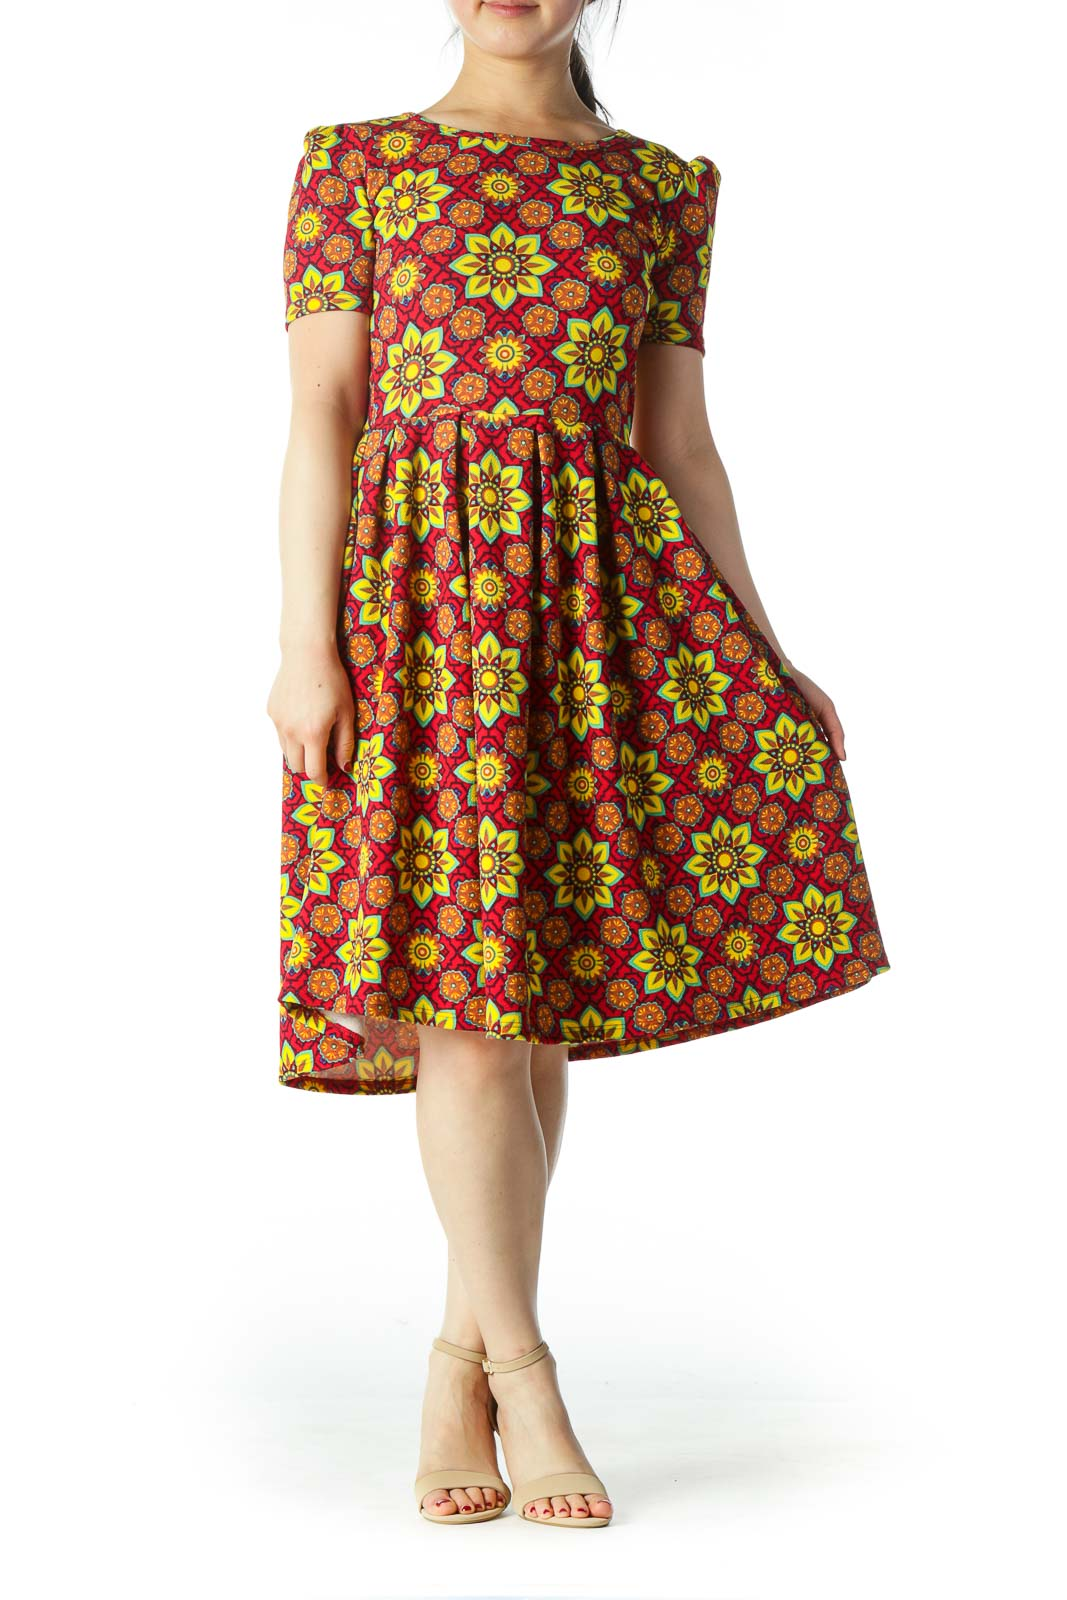 Red and Yellow Floral Sun Dress